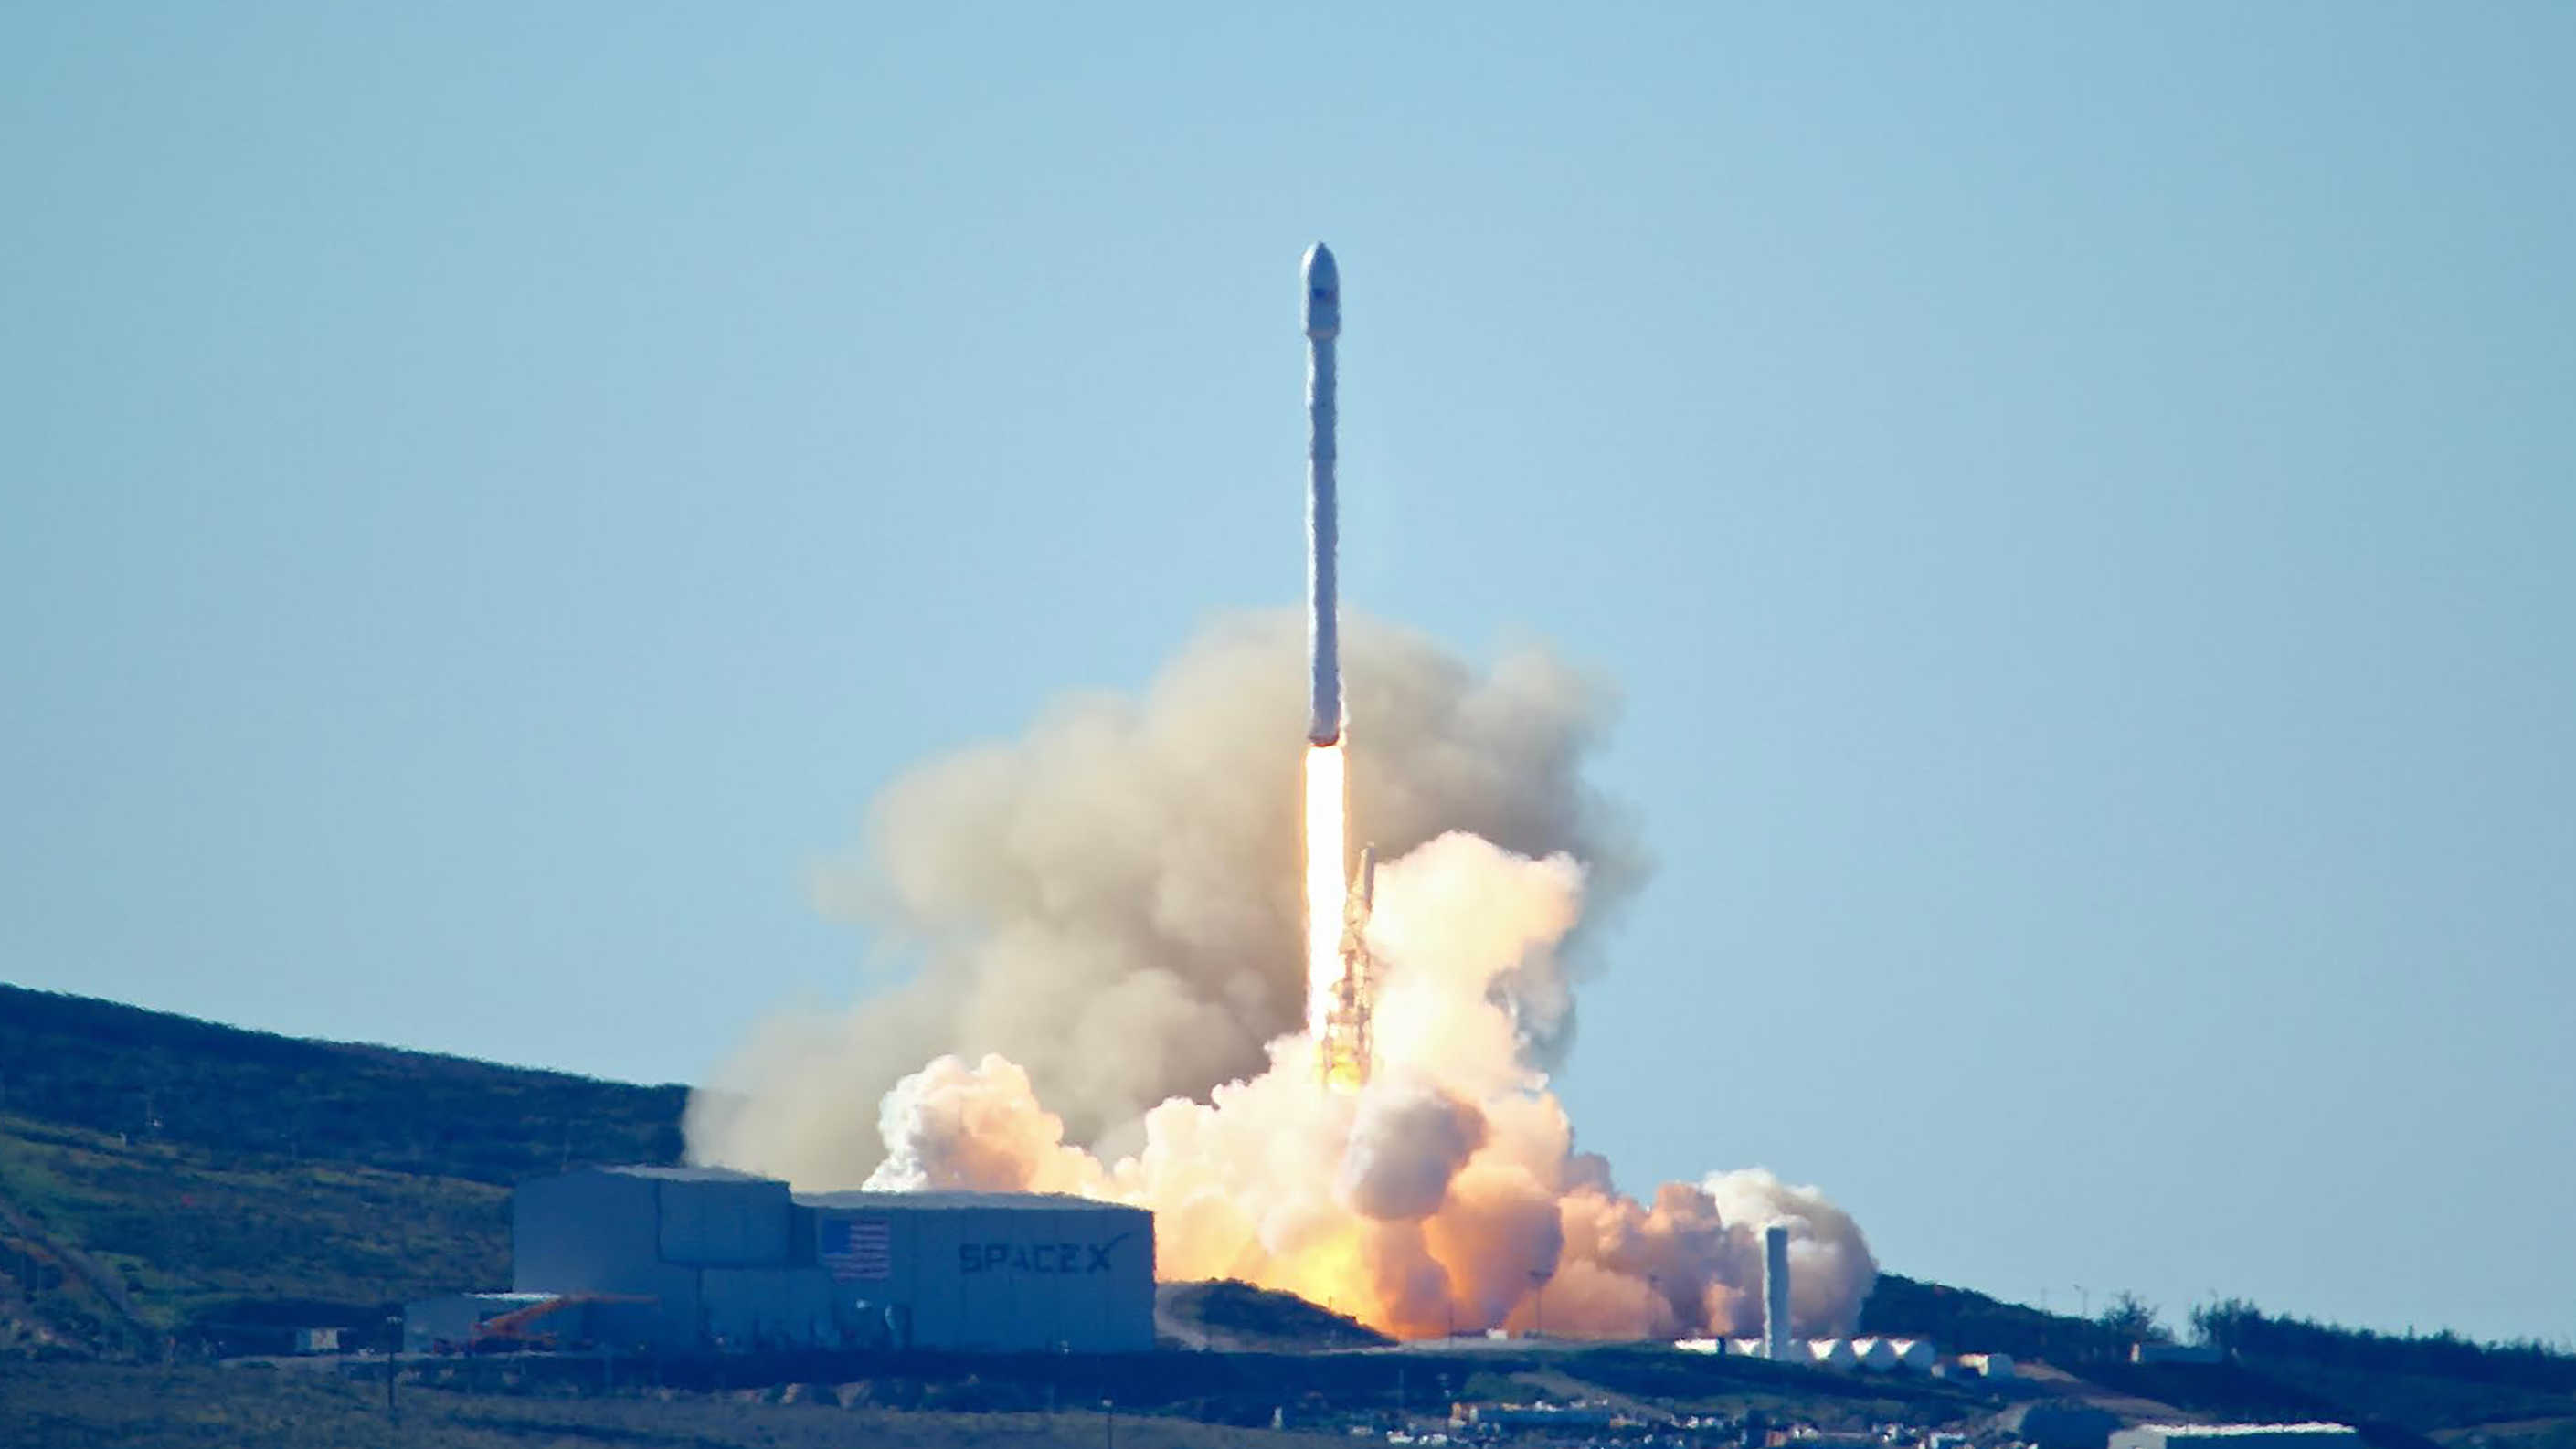 npr.org - Richard Gonzales - SpaceX To Lay Off 10 Percent Of Its Workforce